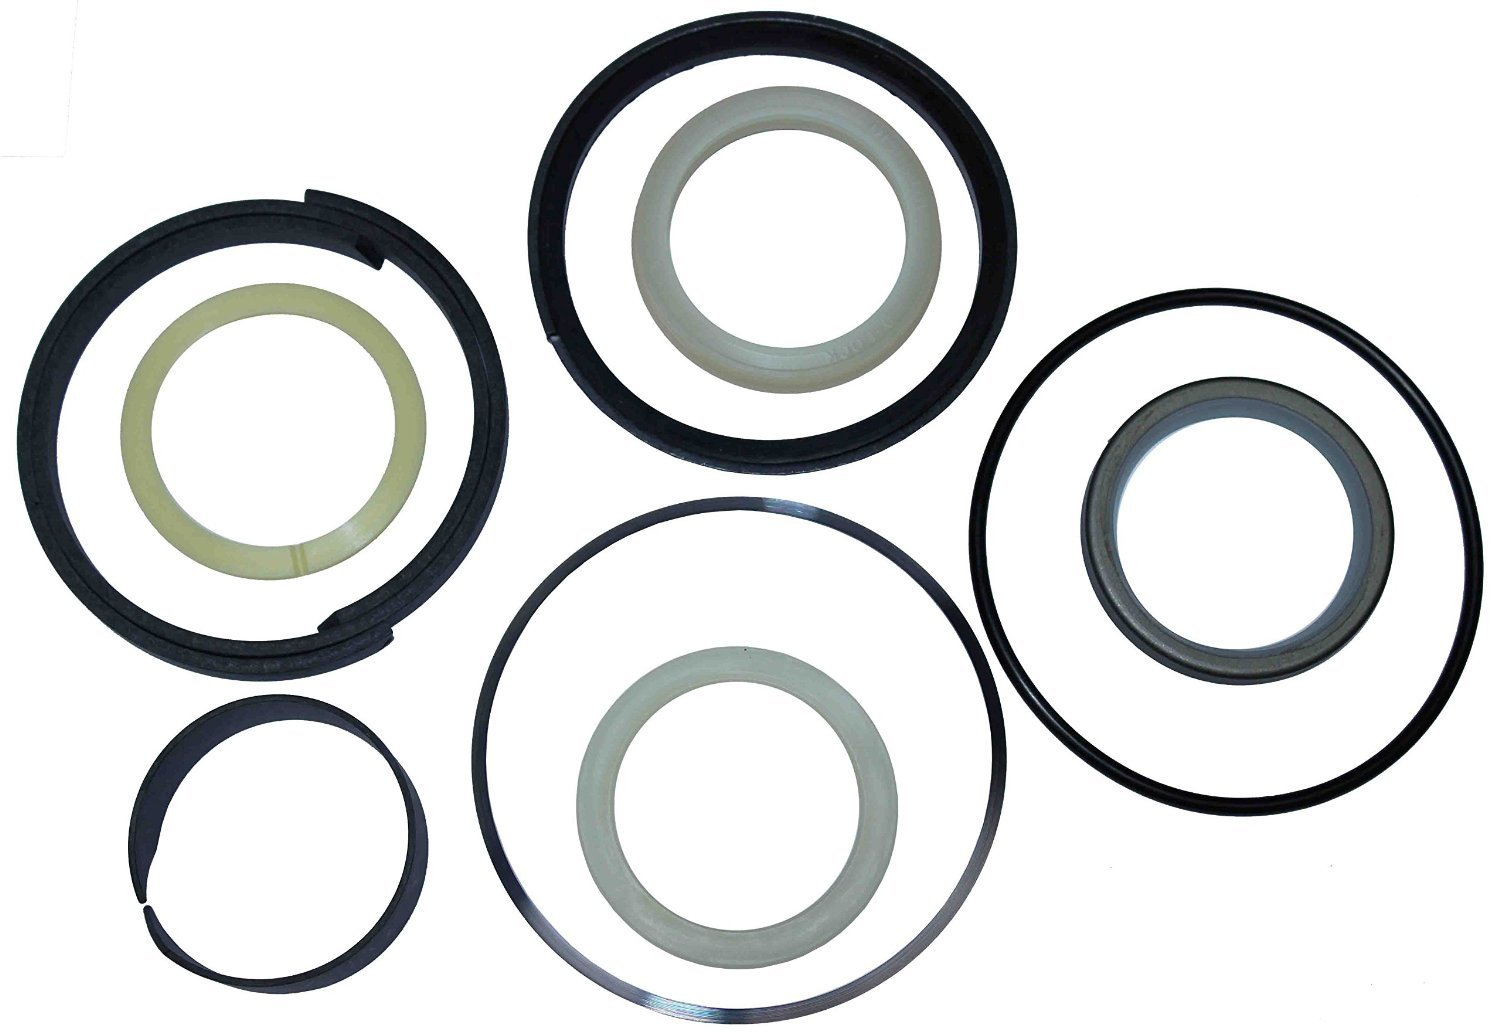 CASE 1543273C1 HYDRAULIC CYLINDER SEAL KIT